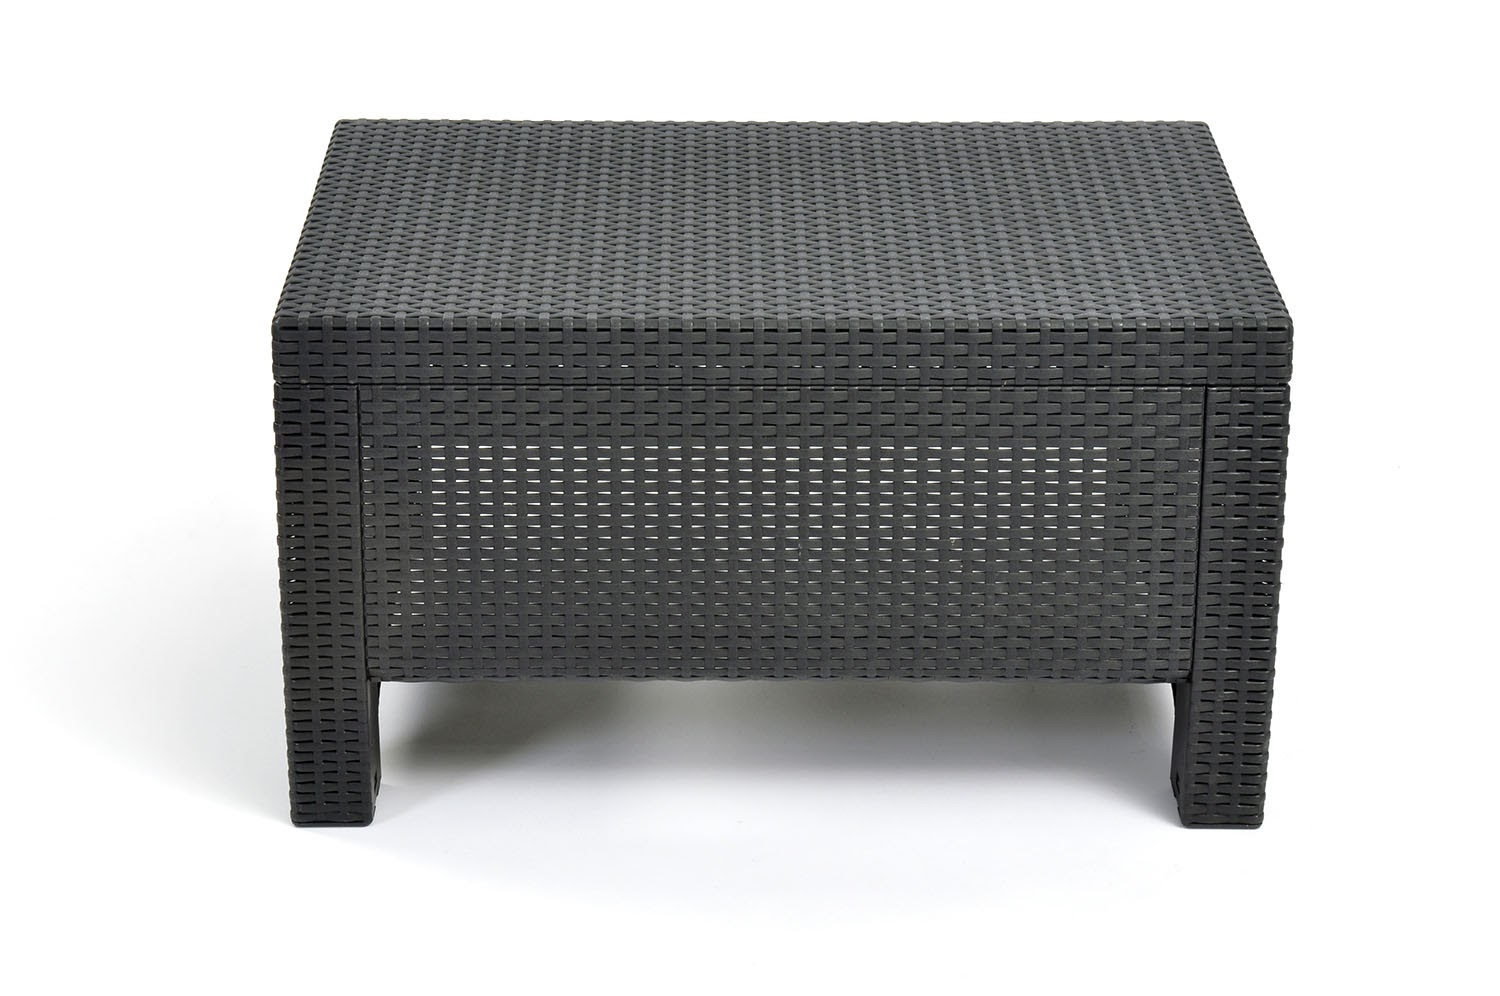 Keter Corfu Resin Coffee Table, All Weather Plastic Patio Furniture,  Charcoal Gray Rattan Image